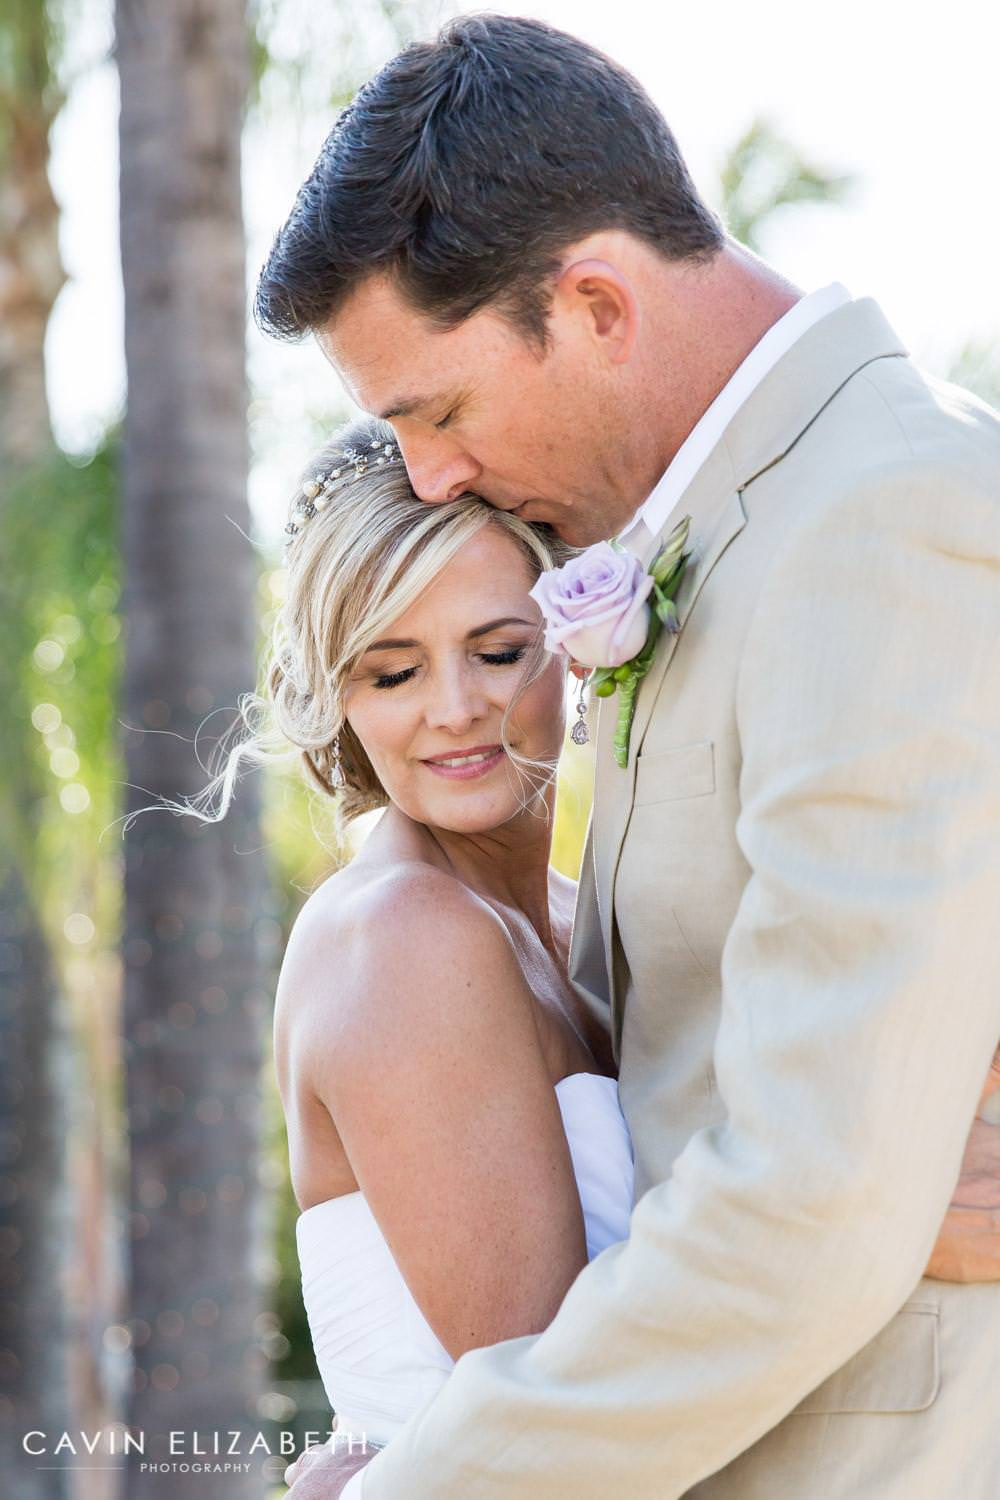 adorable bride and groom photo idea, groom kisses his bride on her head while holding her close, cavin elizabeth photography